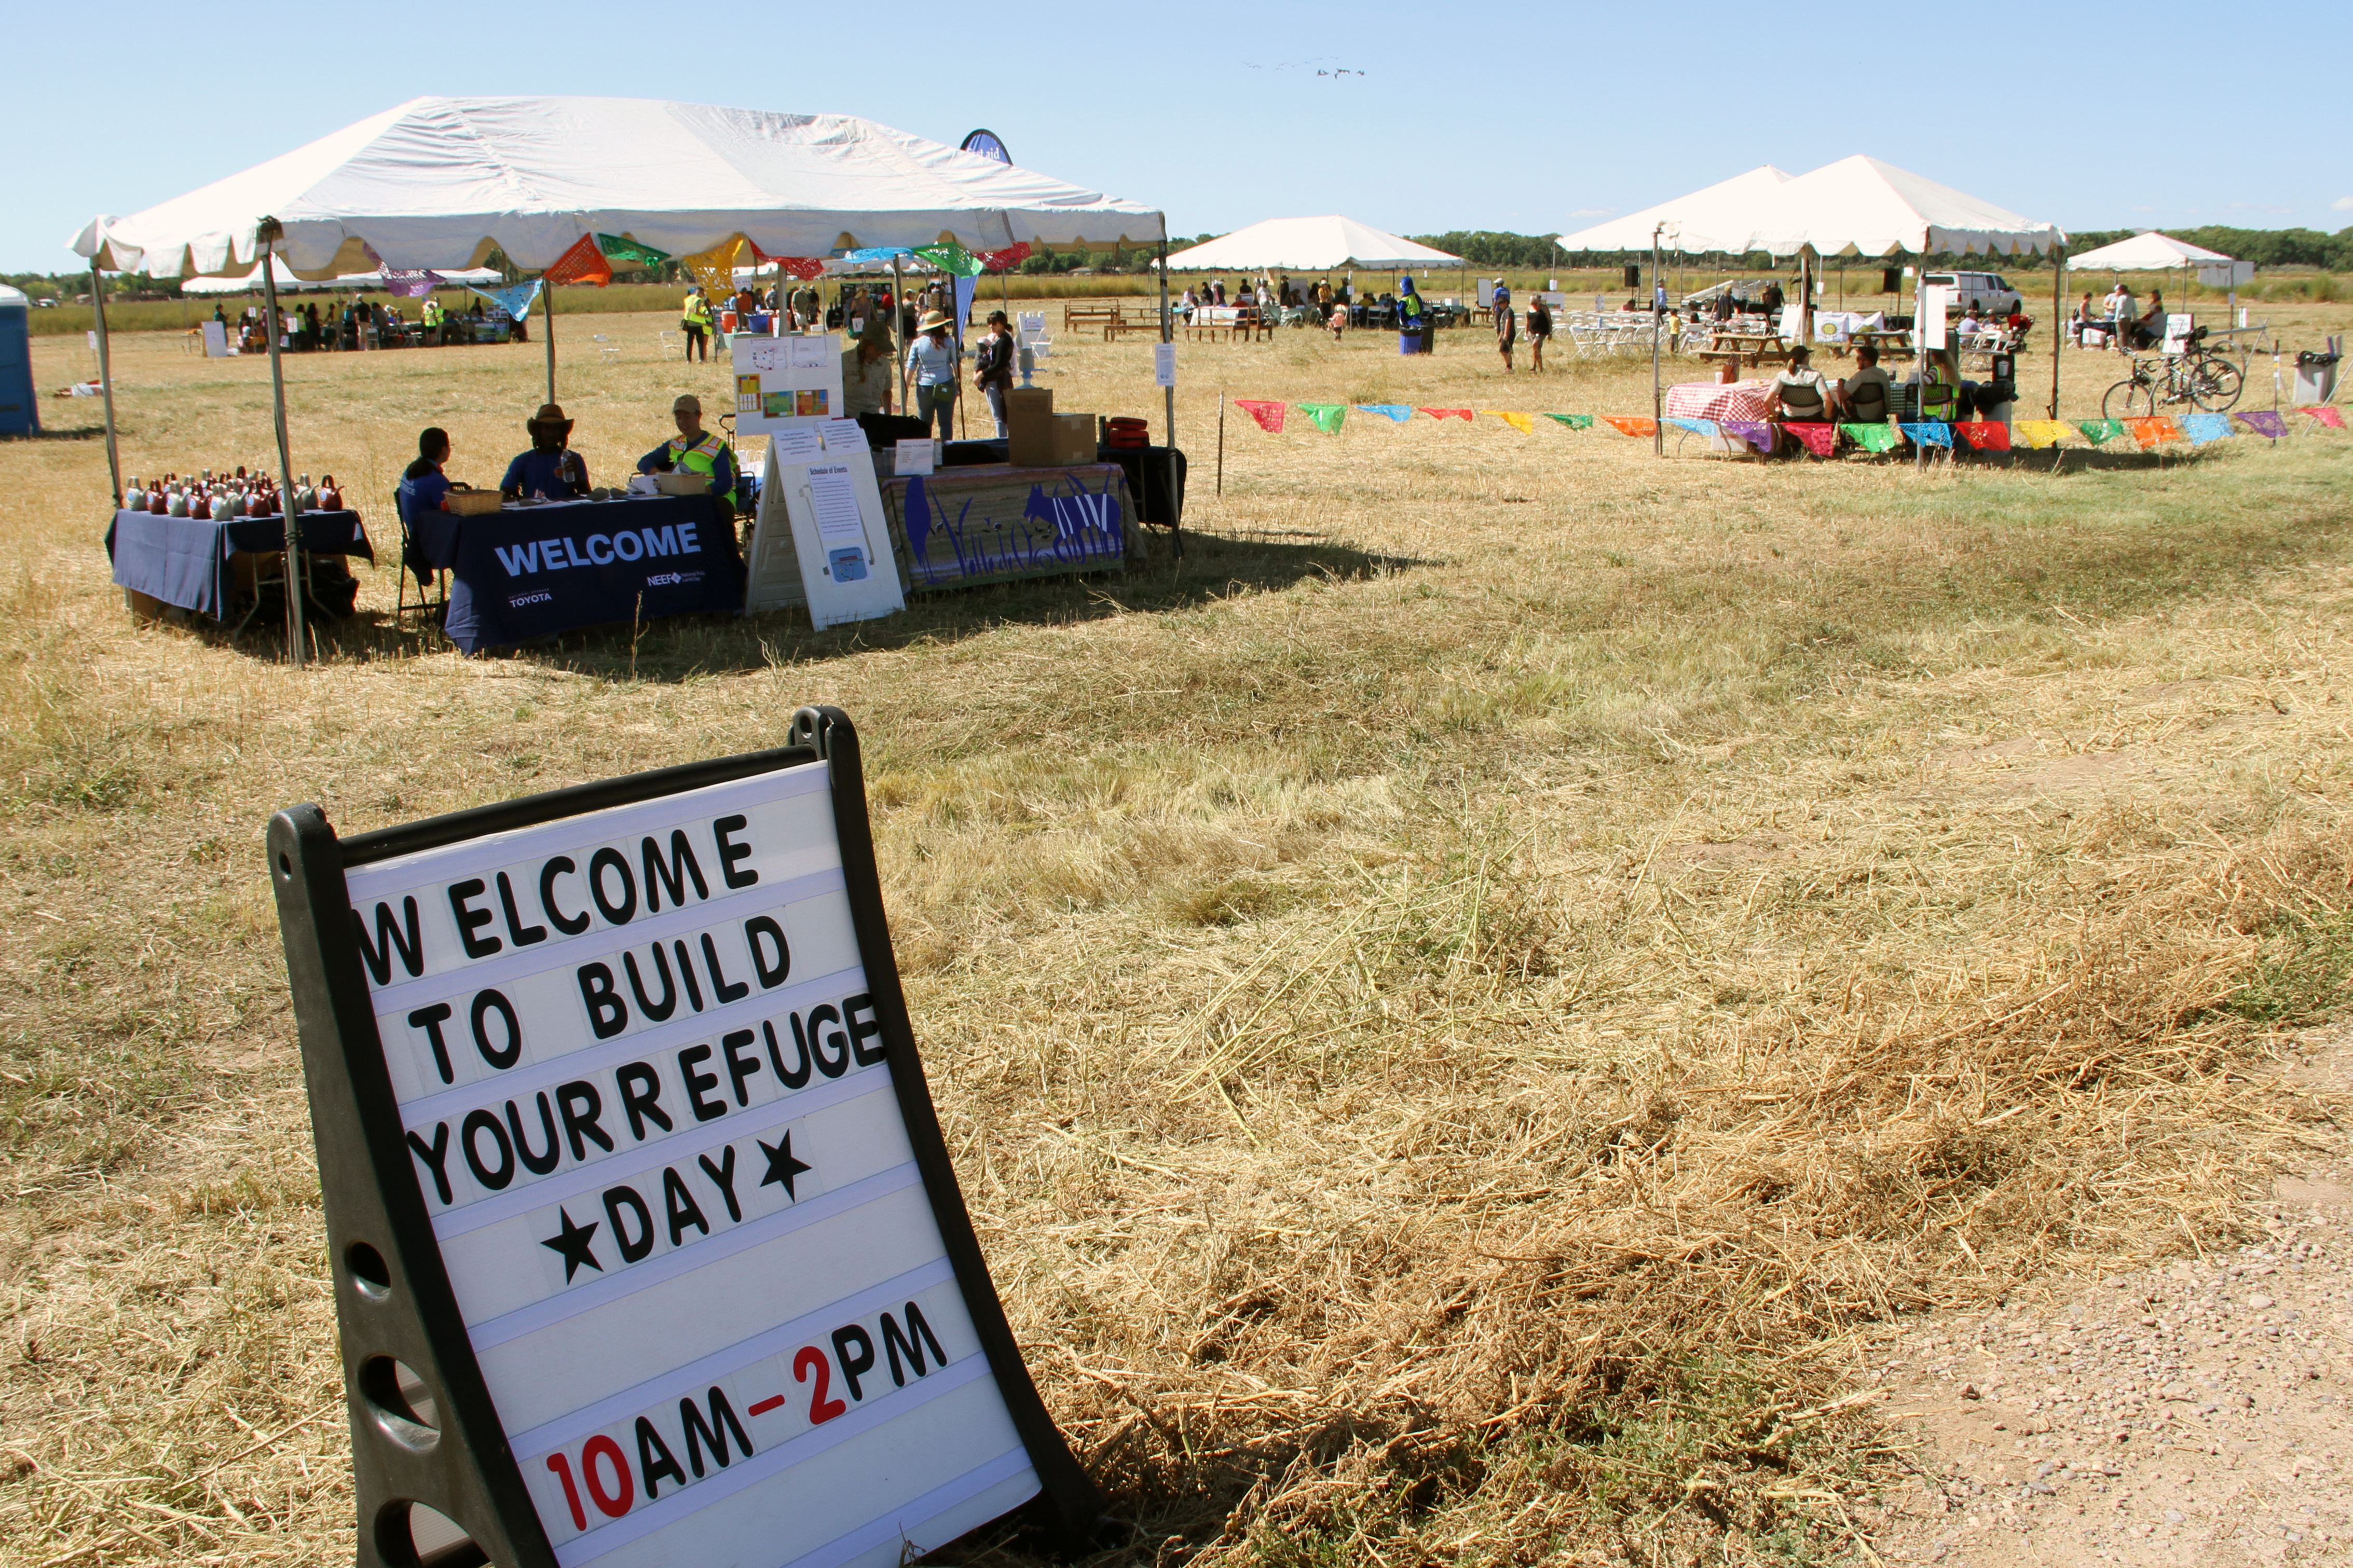 Build your refuge day Valle de Oro NWR